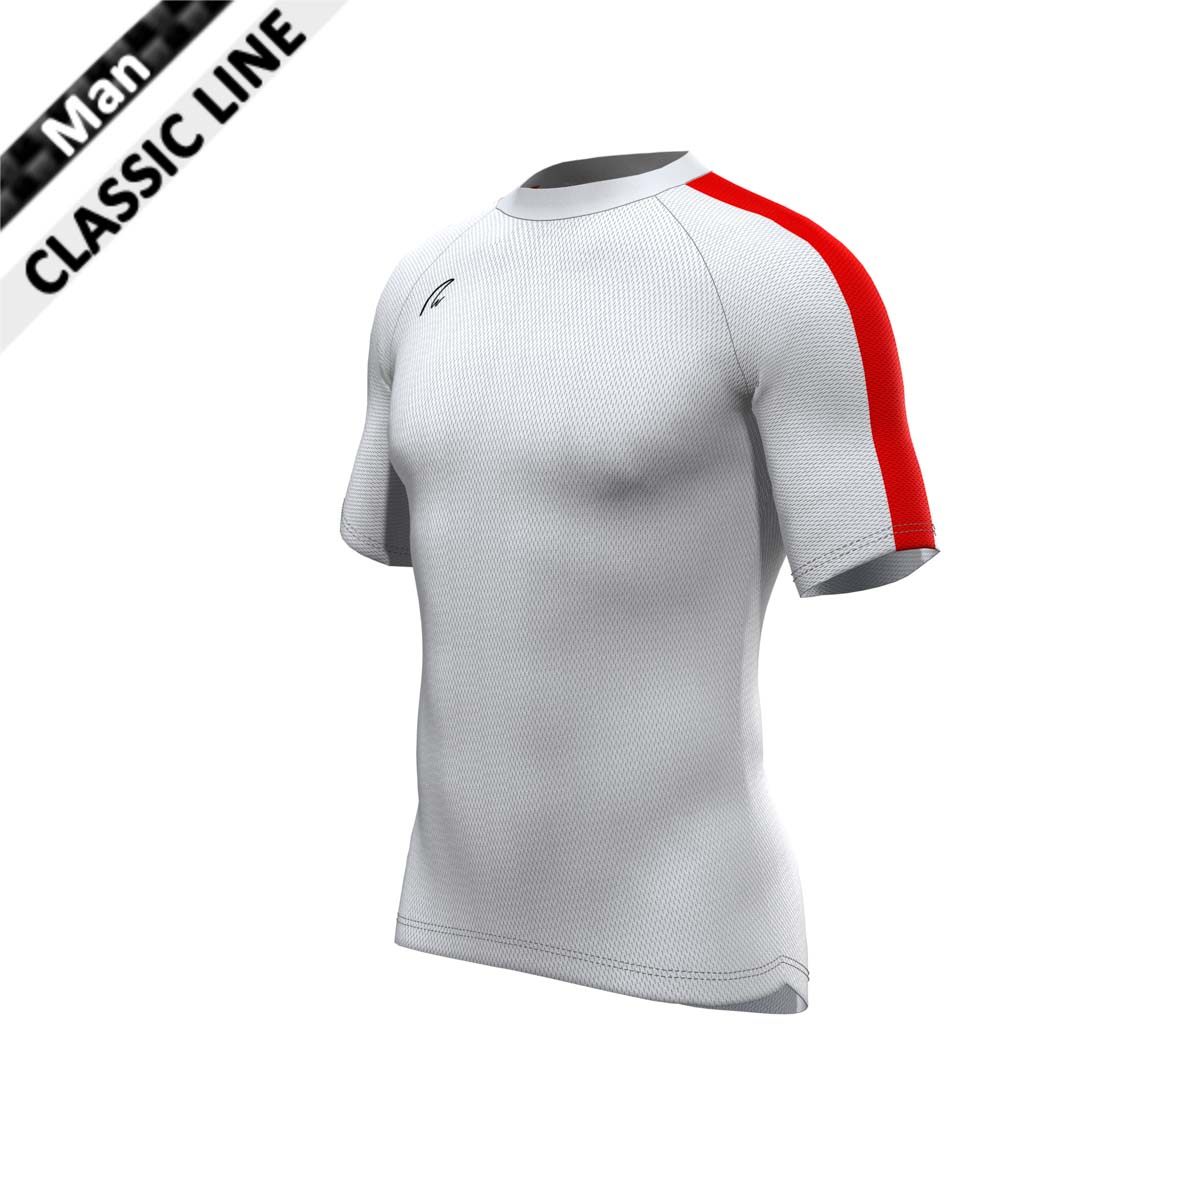 CoolMax Shirt - Man weiss-rot